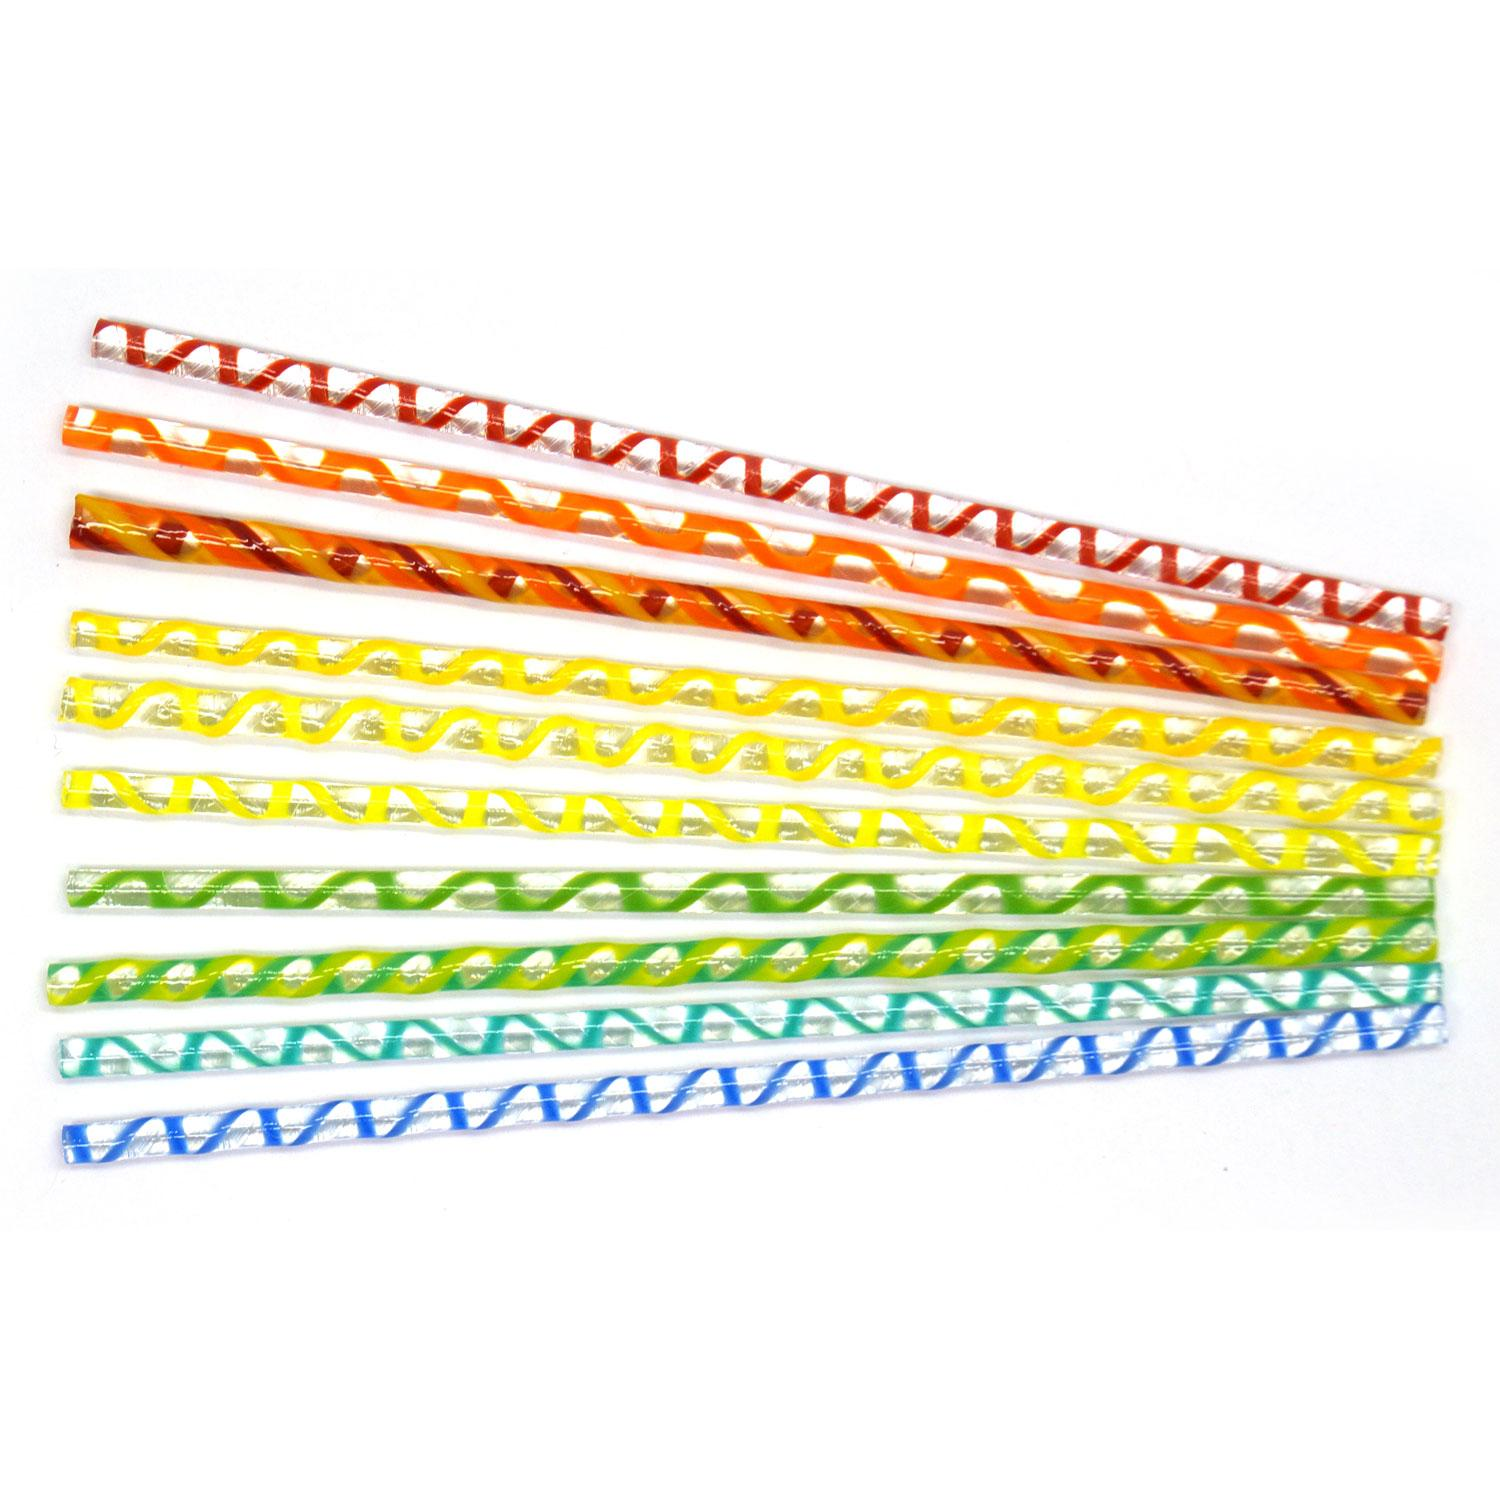 Rainbow Assortment Twisted Cane Pack - 96 COE